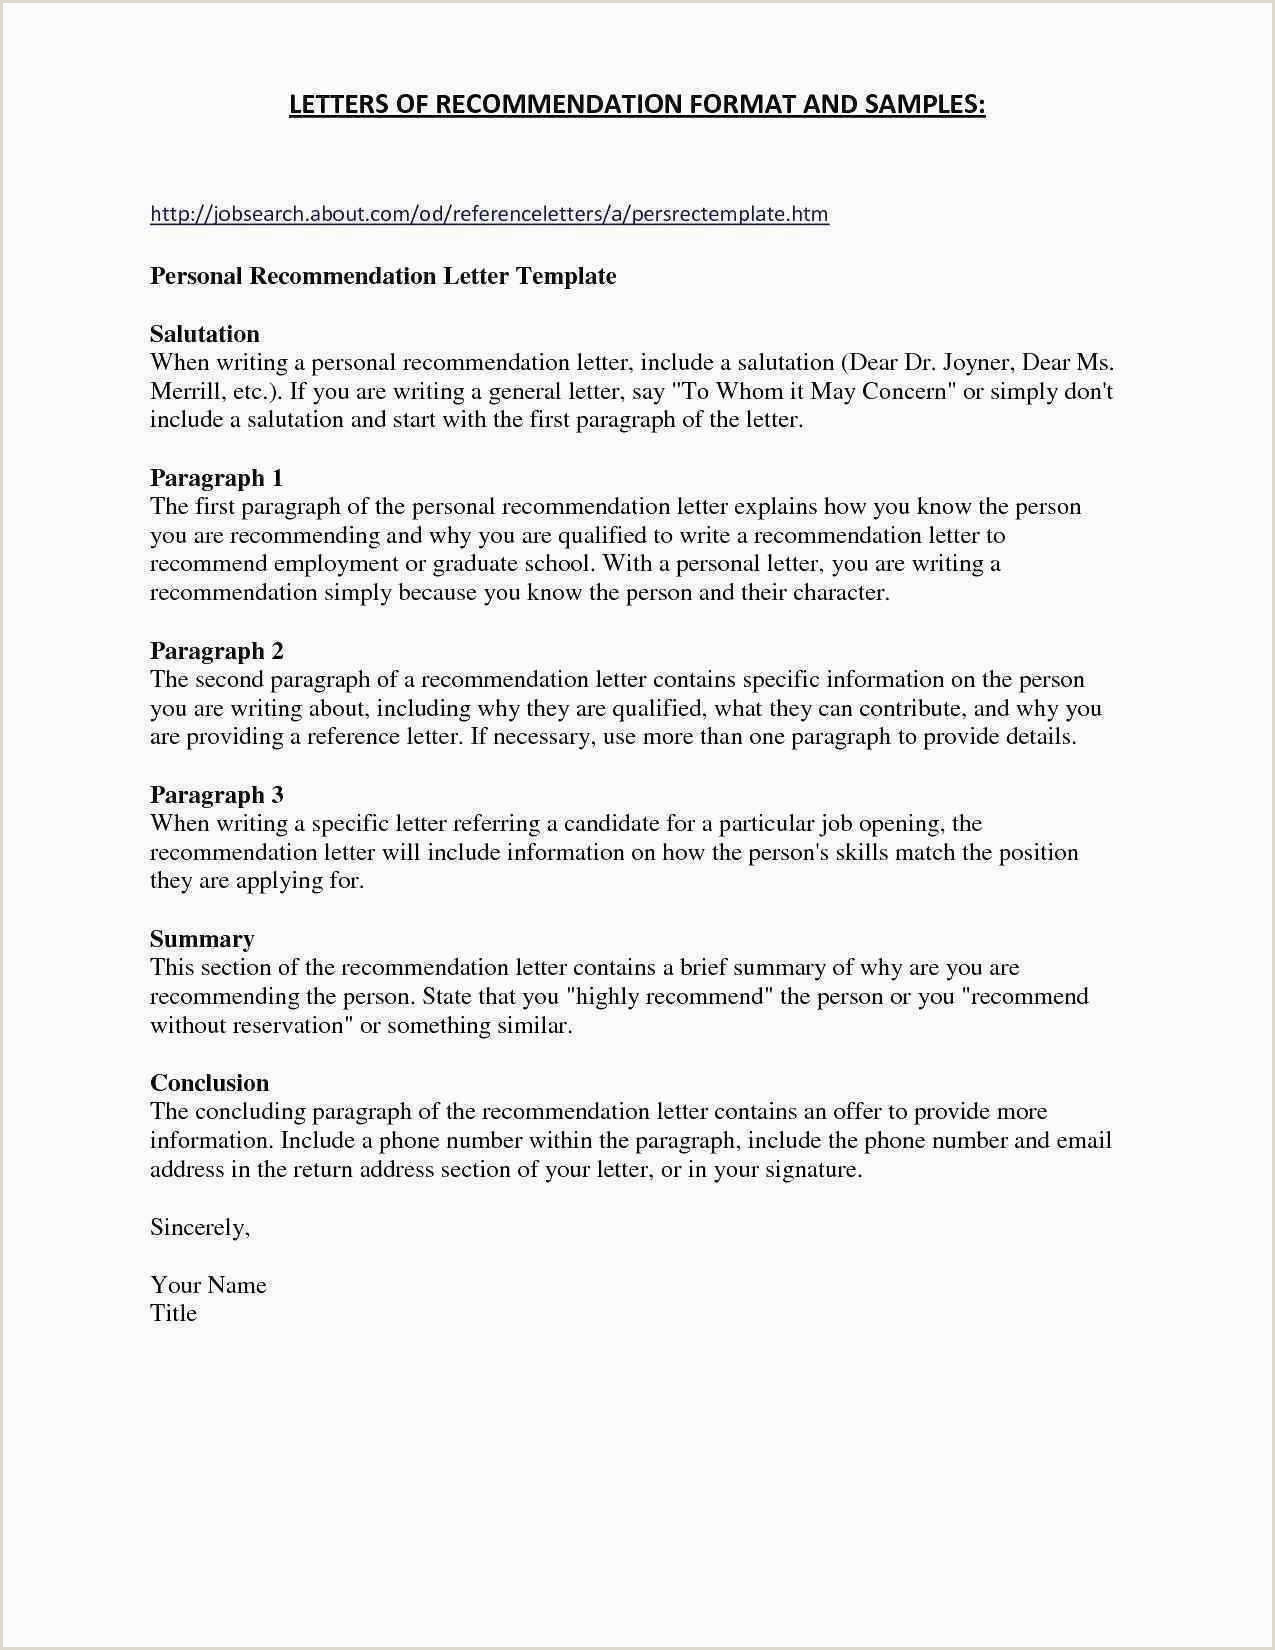 Cv format for Hotel Job Resume Sample for Fresh Graduate without Experience